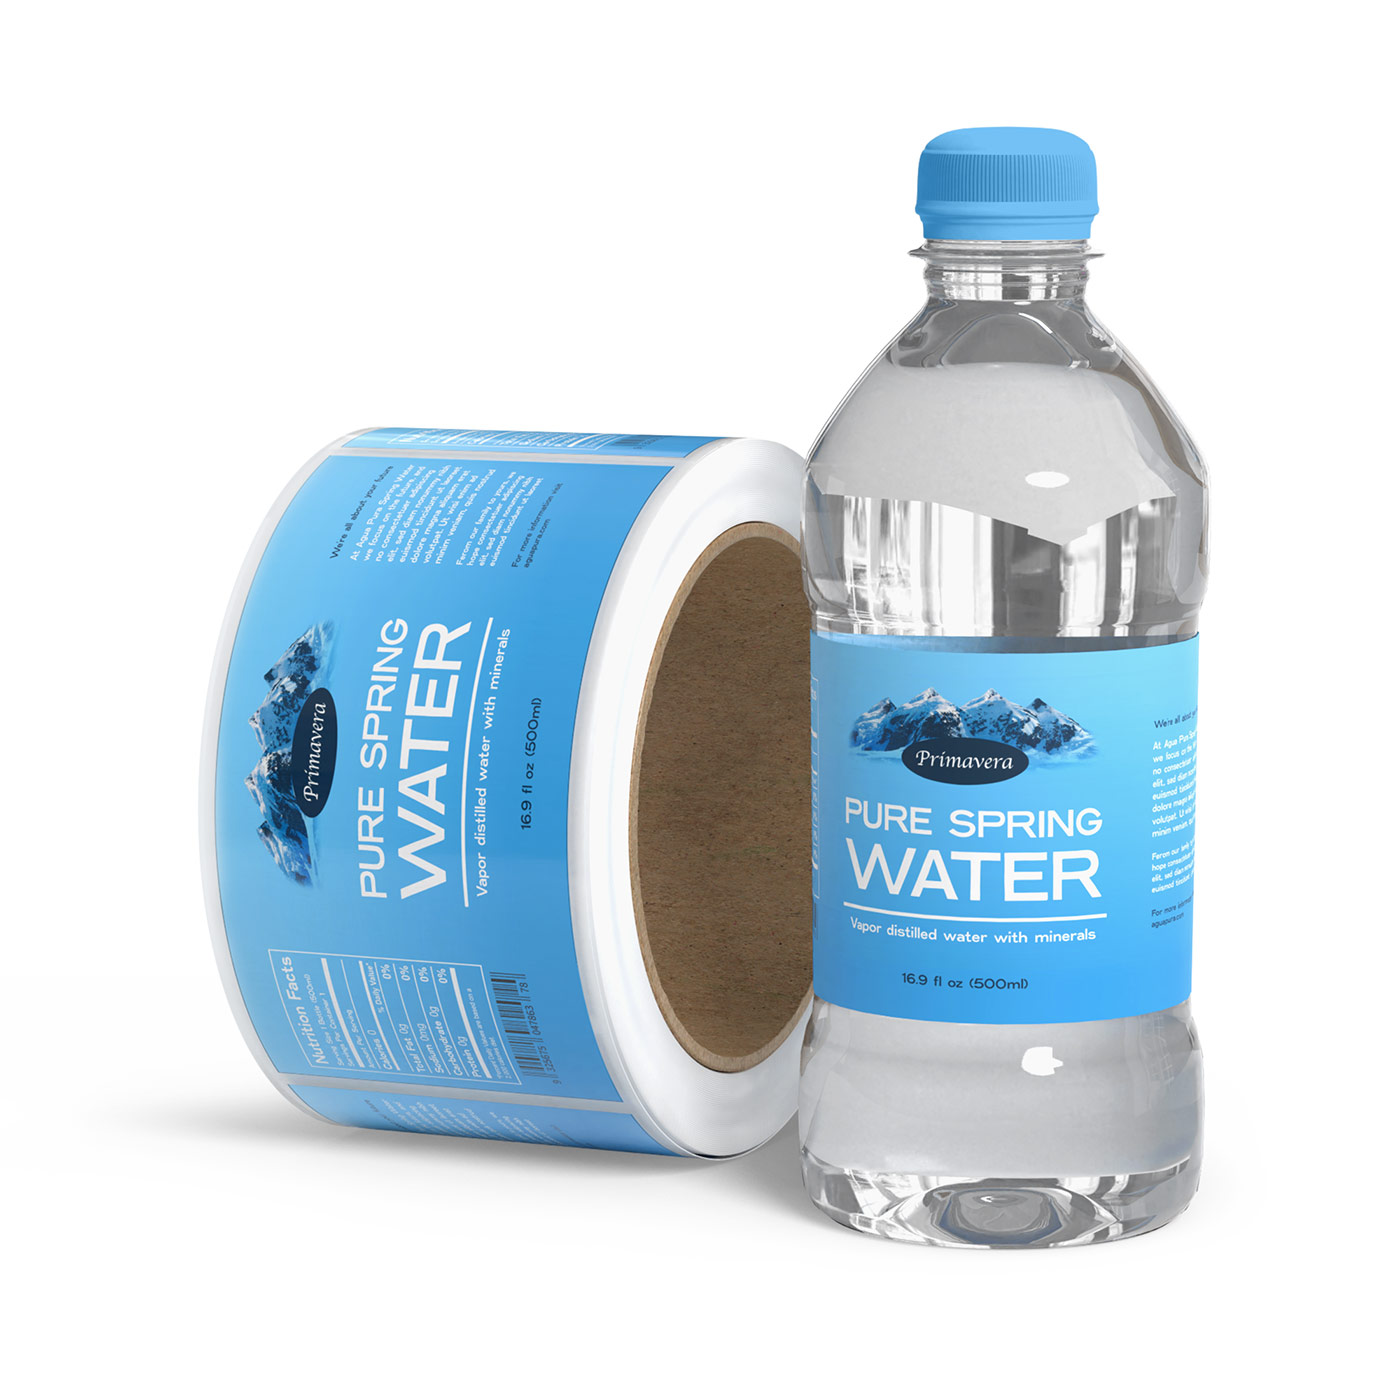 waterproof labels for bottles and jars